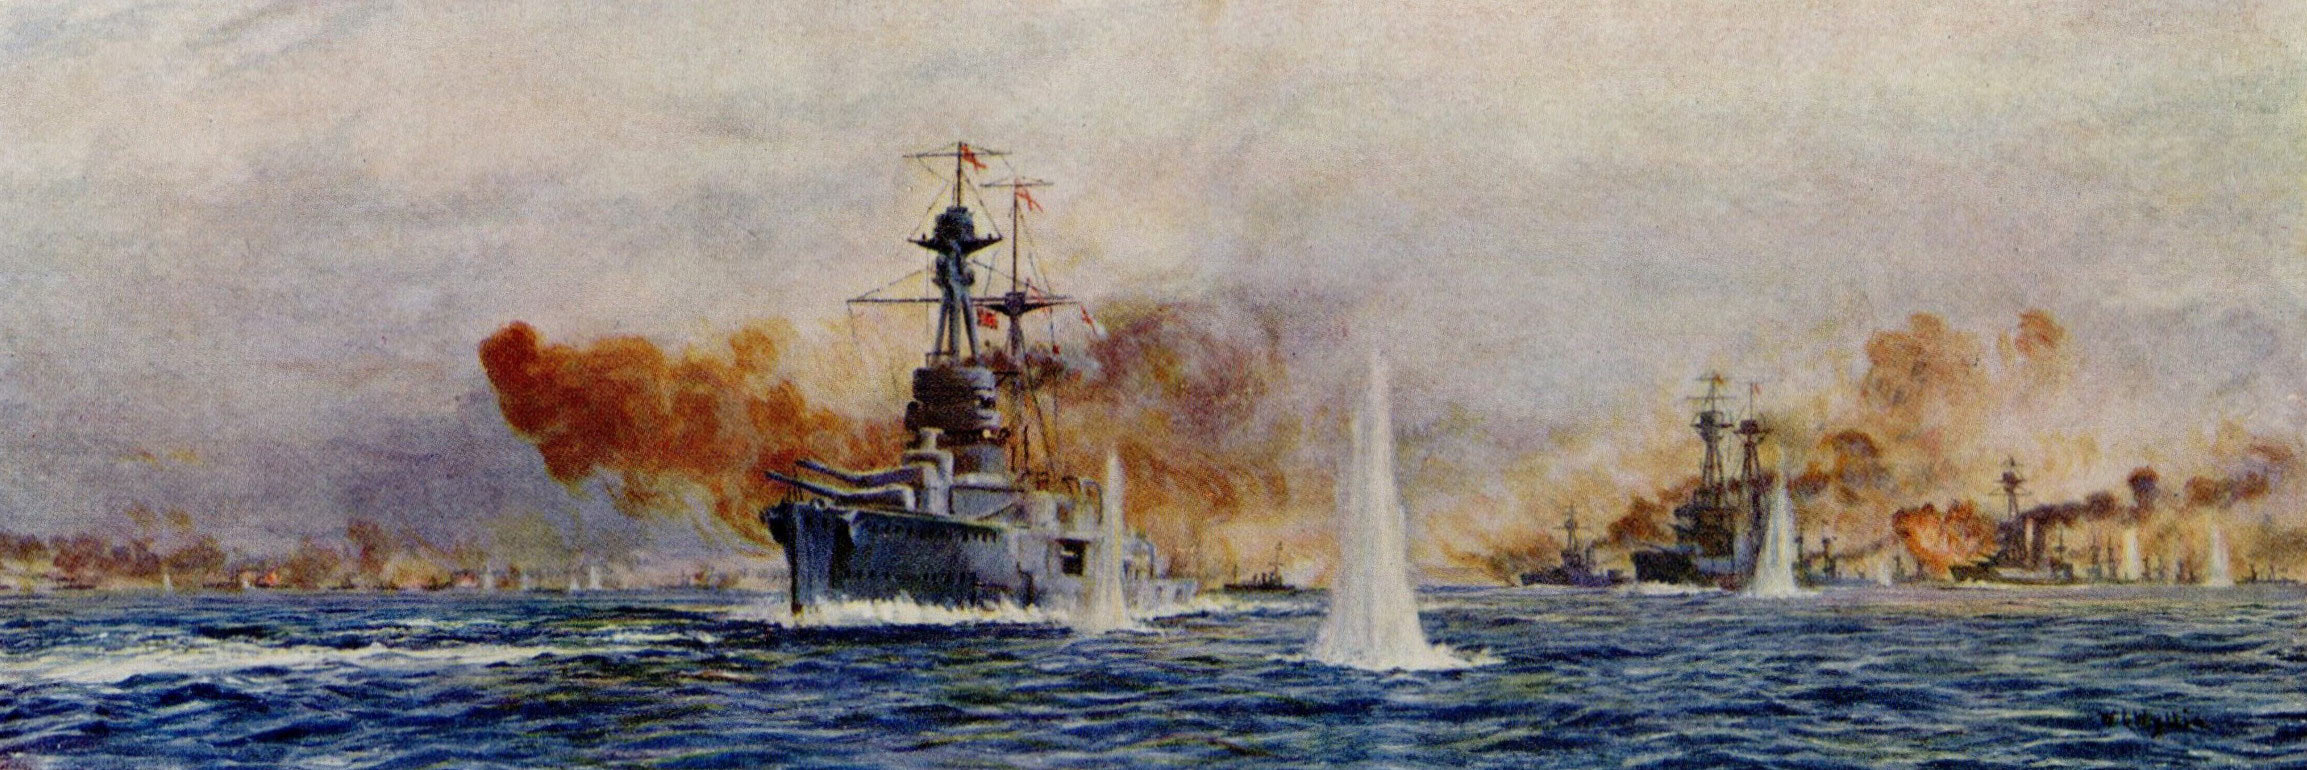 British Battleships at the Battle of Jutland 31st May 1916: HMS Royal Oak Benbow Superb and Canada: picture by Lionel Wyllie: to buy this picture click here